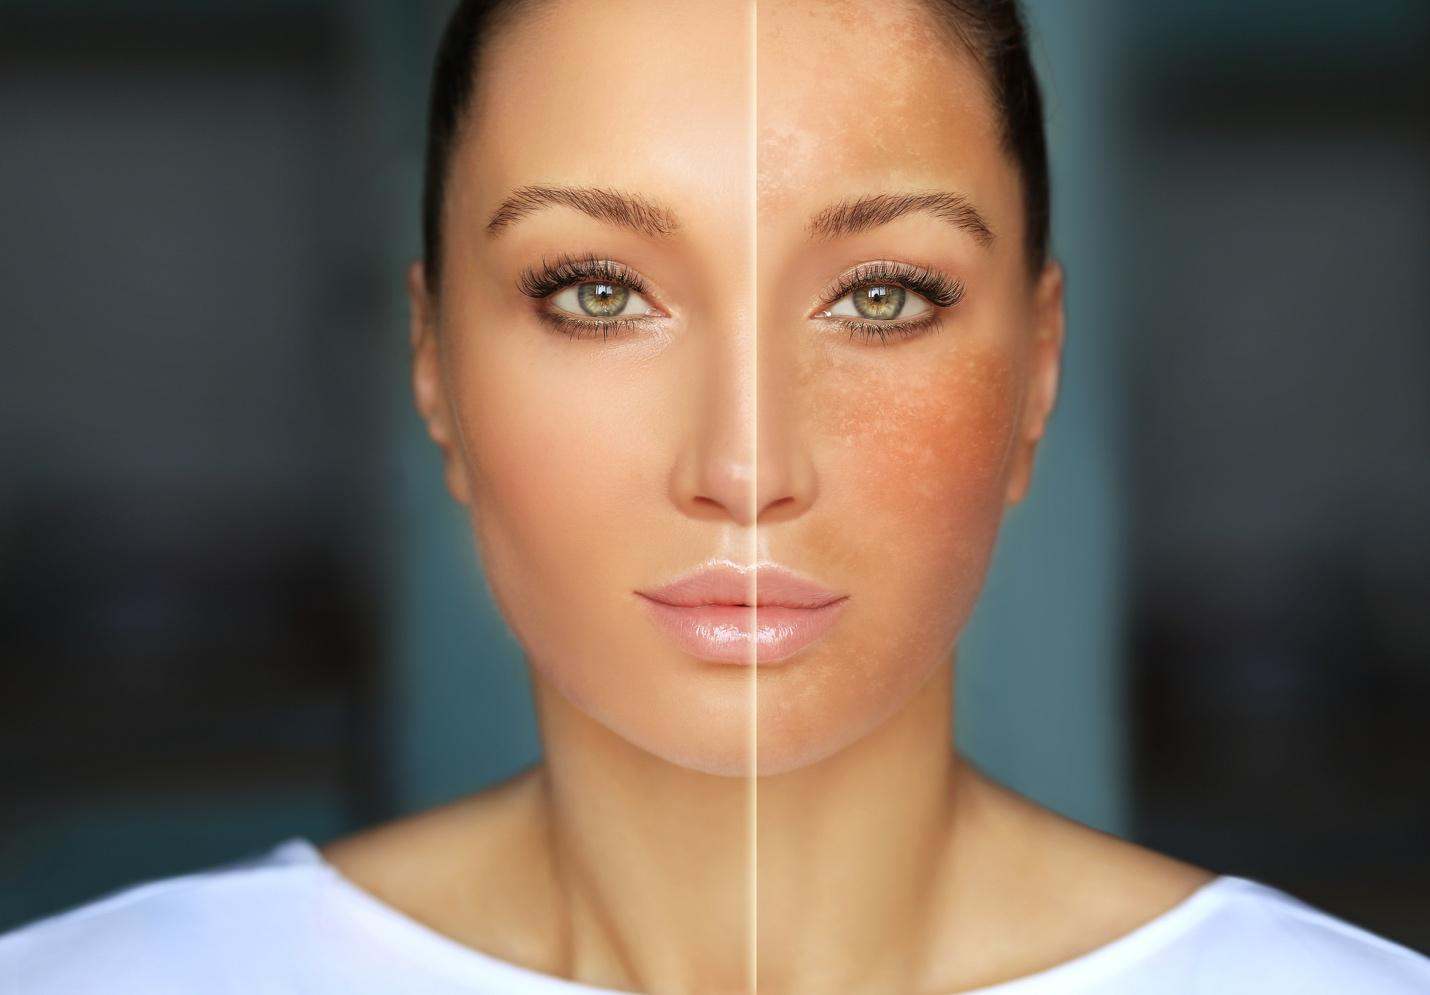 A woman who has had laser skin resurfacing on one side of her face.